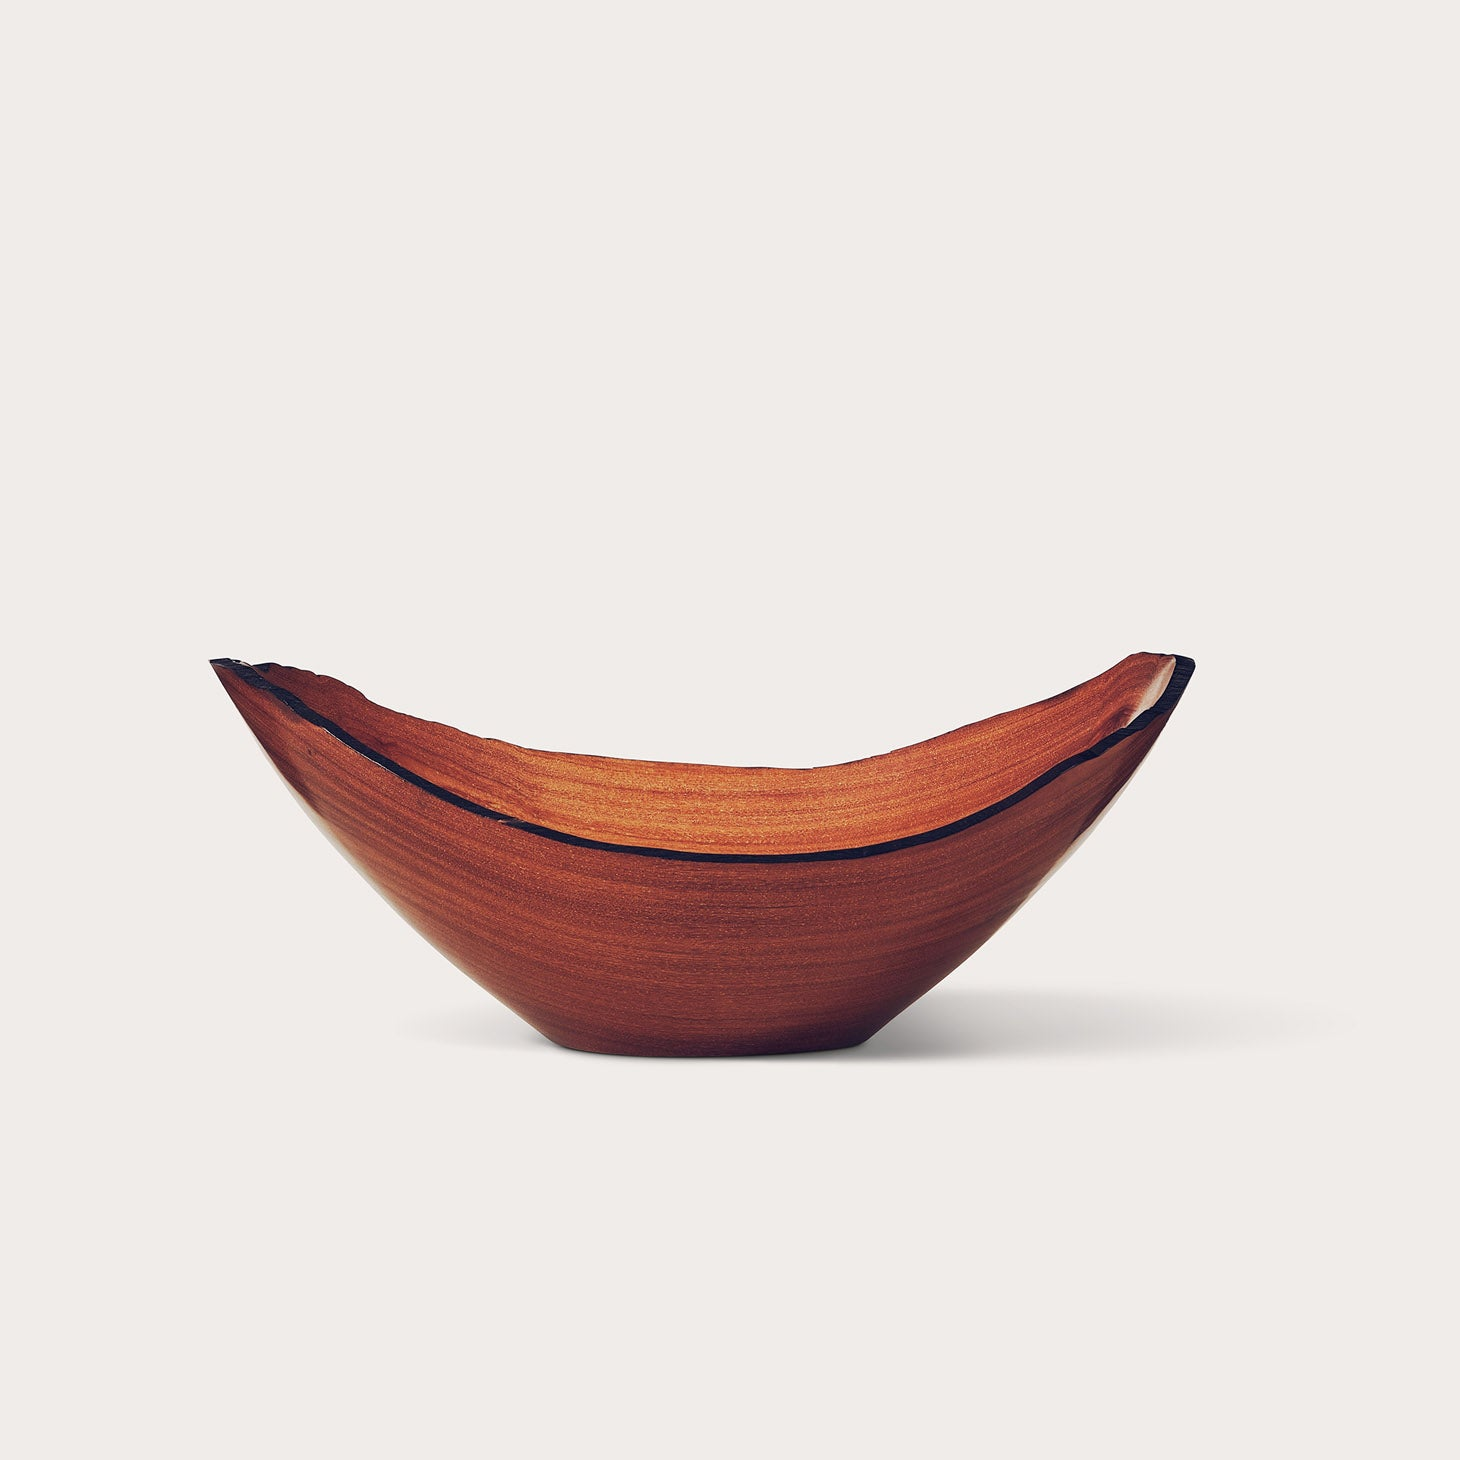 Marina Bowl Accessories Etel Carmona Designer Furniture Sku: 003-100-10032